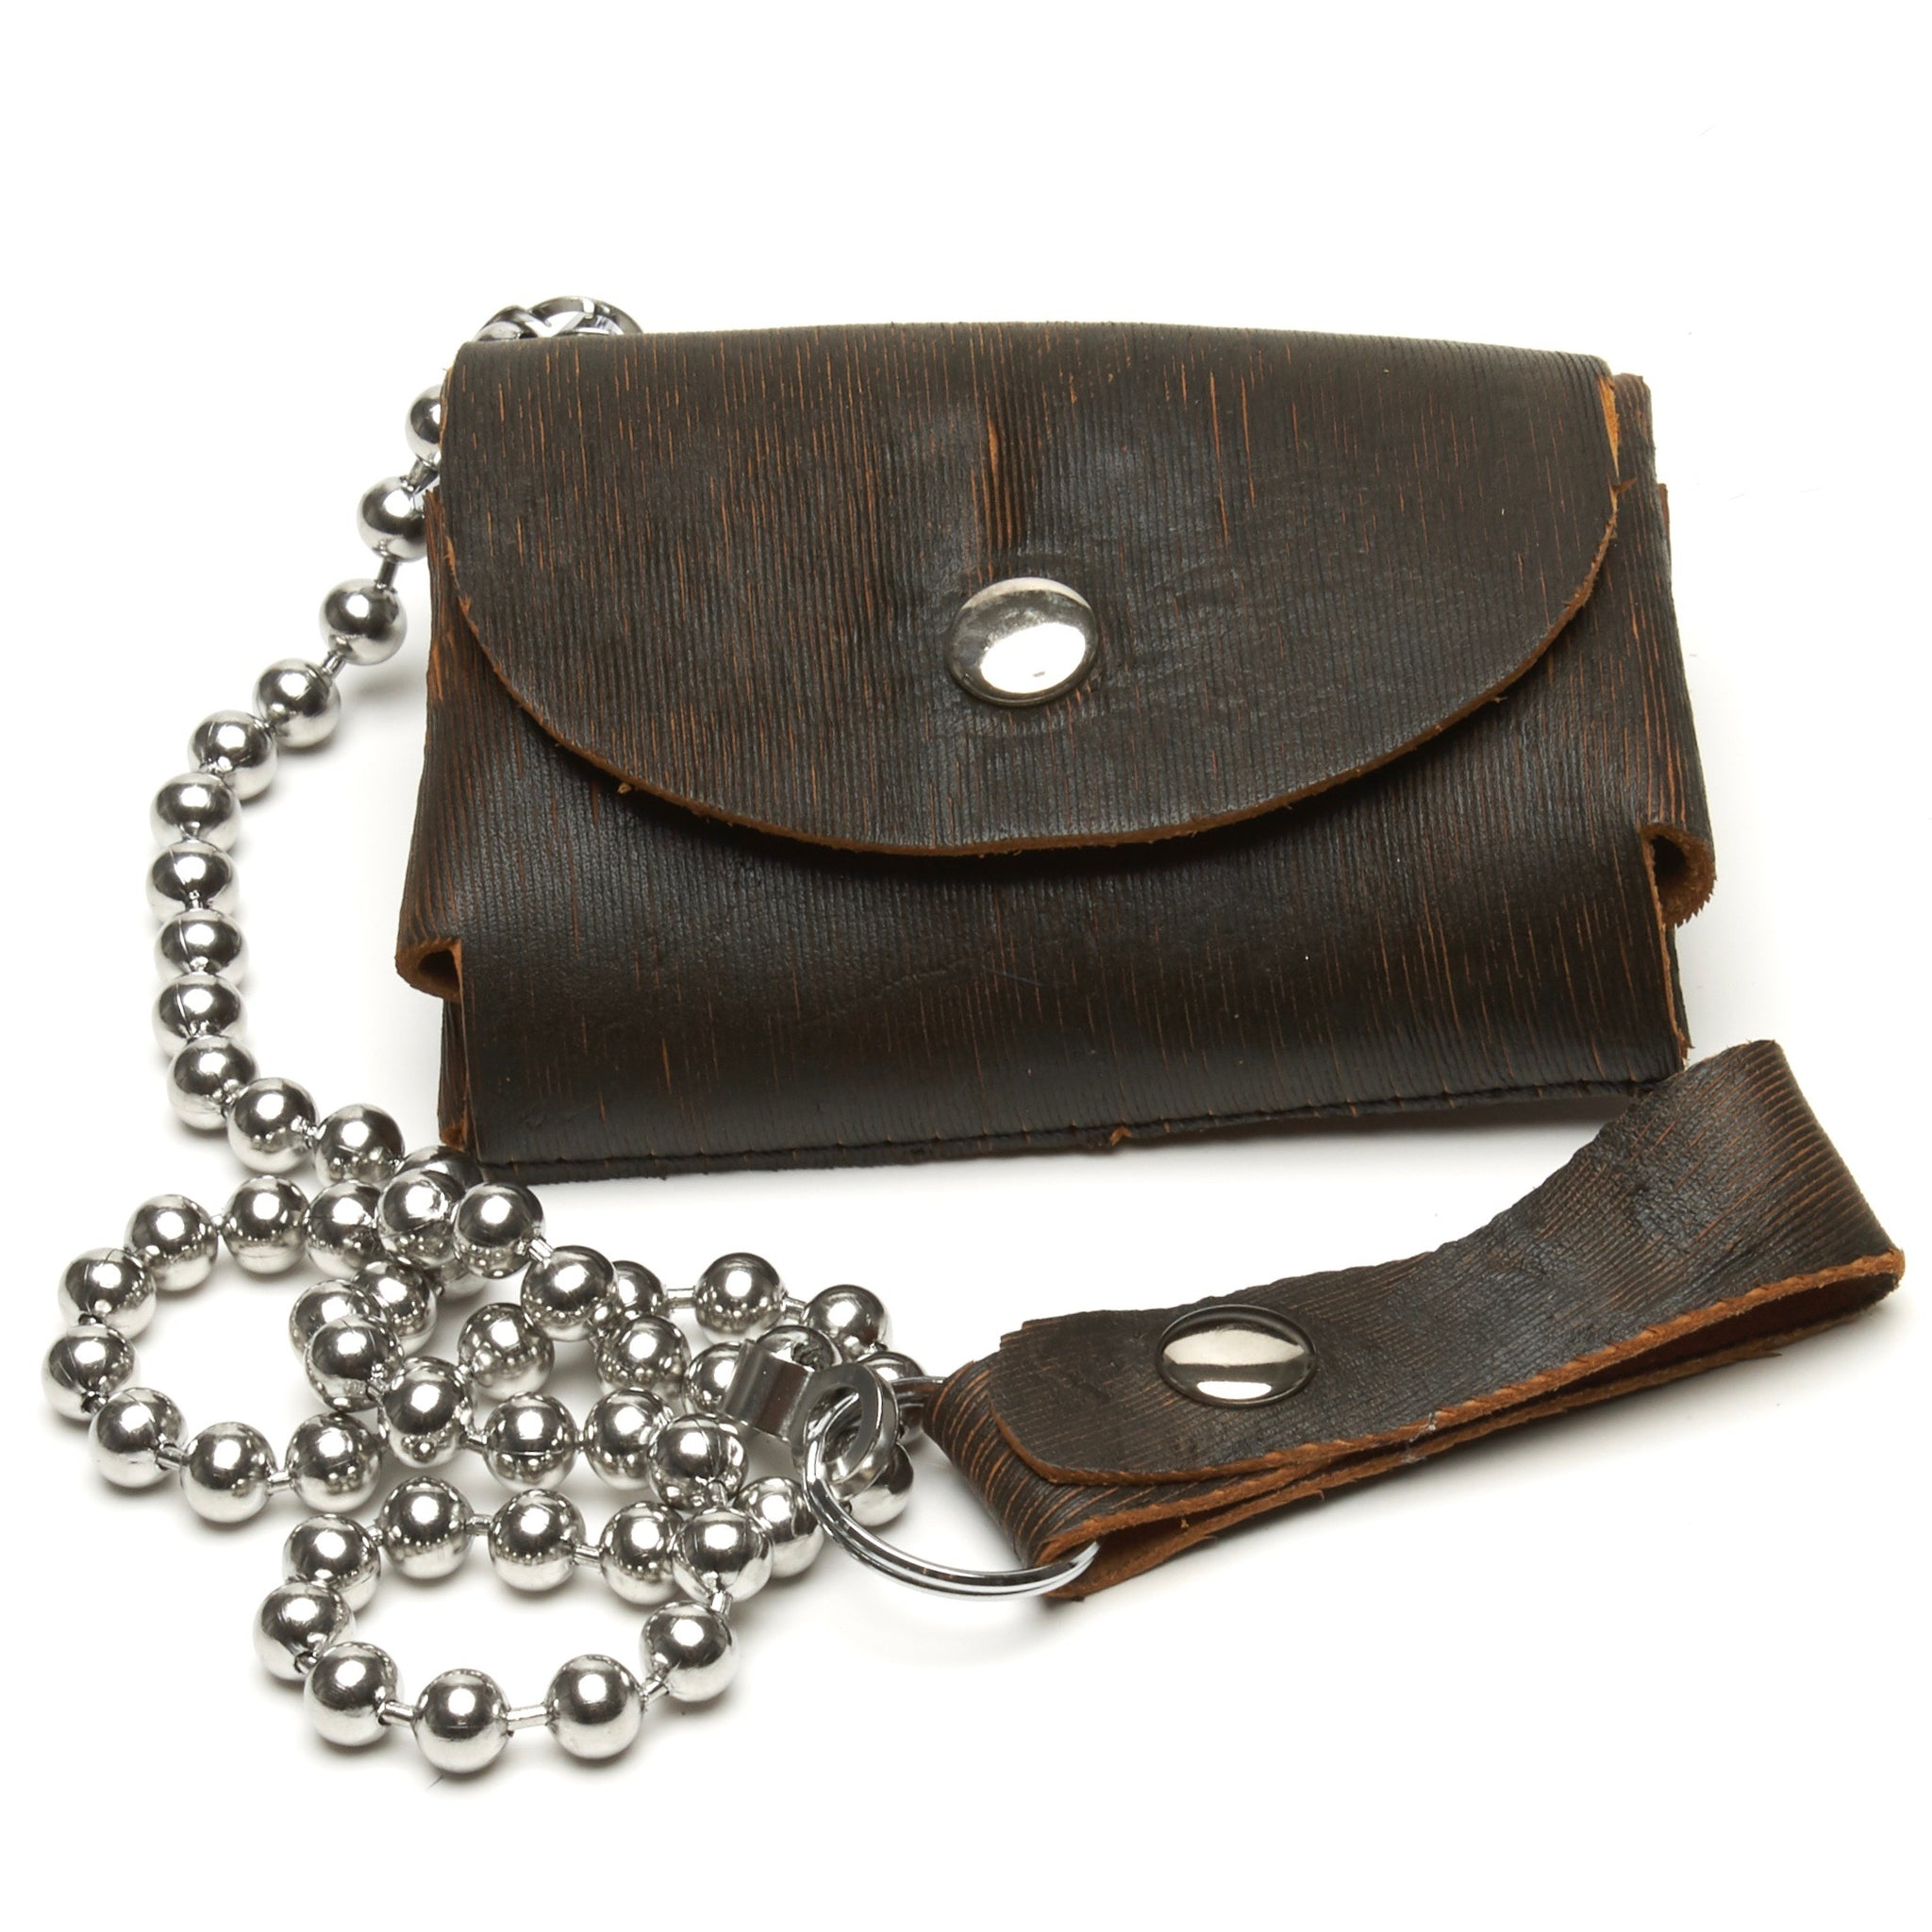 LASER CUT TEXTURED LEATHER 2-COMPARTMENT WALLET WITH SNAP CLOSURE AND OPTIONAL CHAIN by NYET Jewelry.